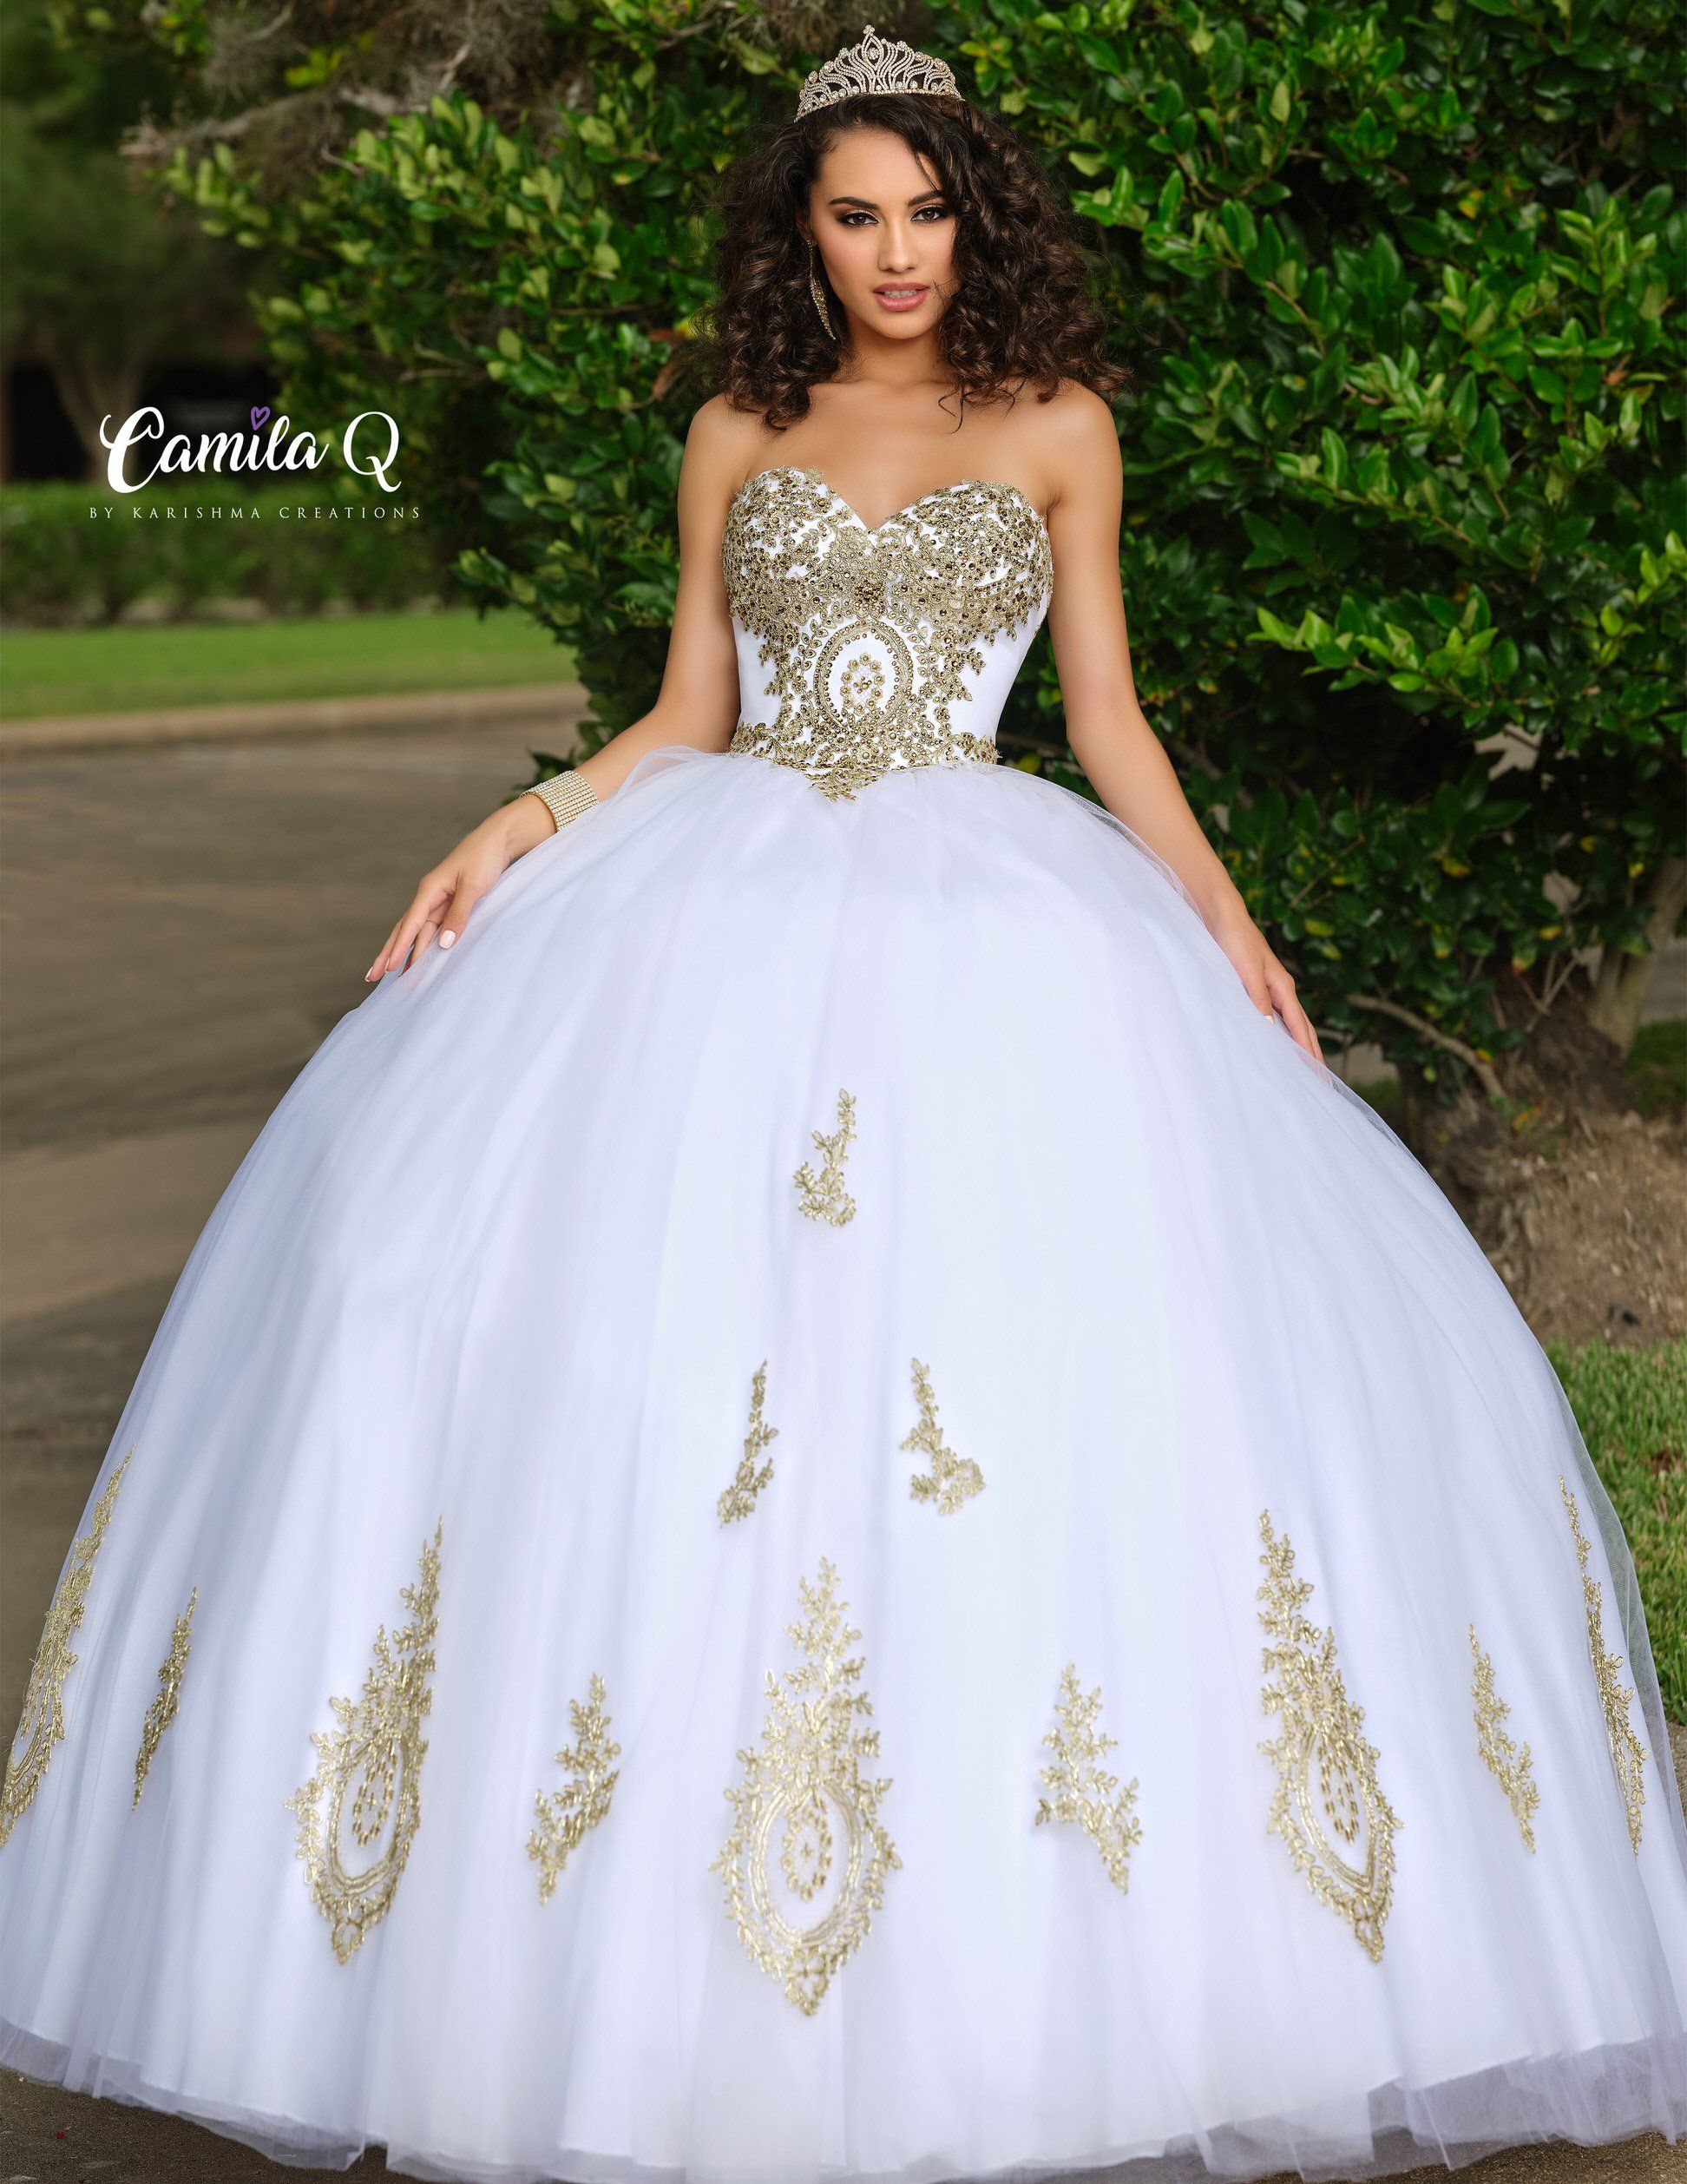 Camila Q 17010 Quinceanera Dress Ballgown Tulle Applique Strapless Sweetheart Gown In 2021 Pretty Quinceanera Dresses White Quinceanera Dresses Quinceanera Dresses Gold [ 2516 x 1944 Pixel ]